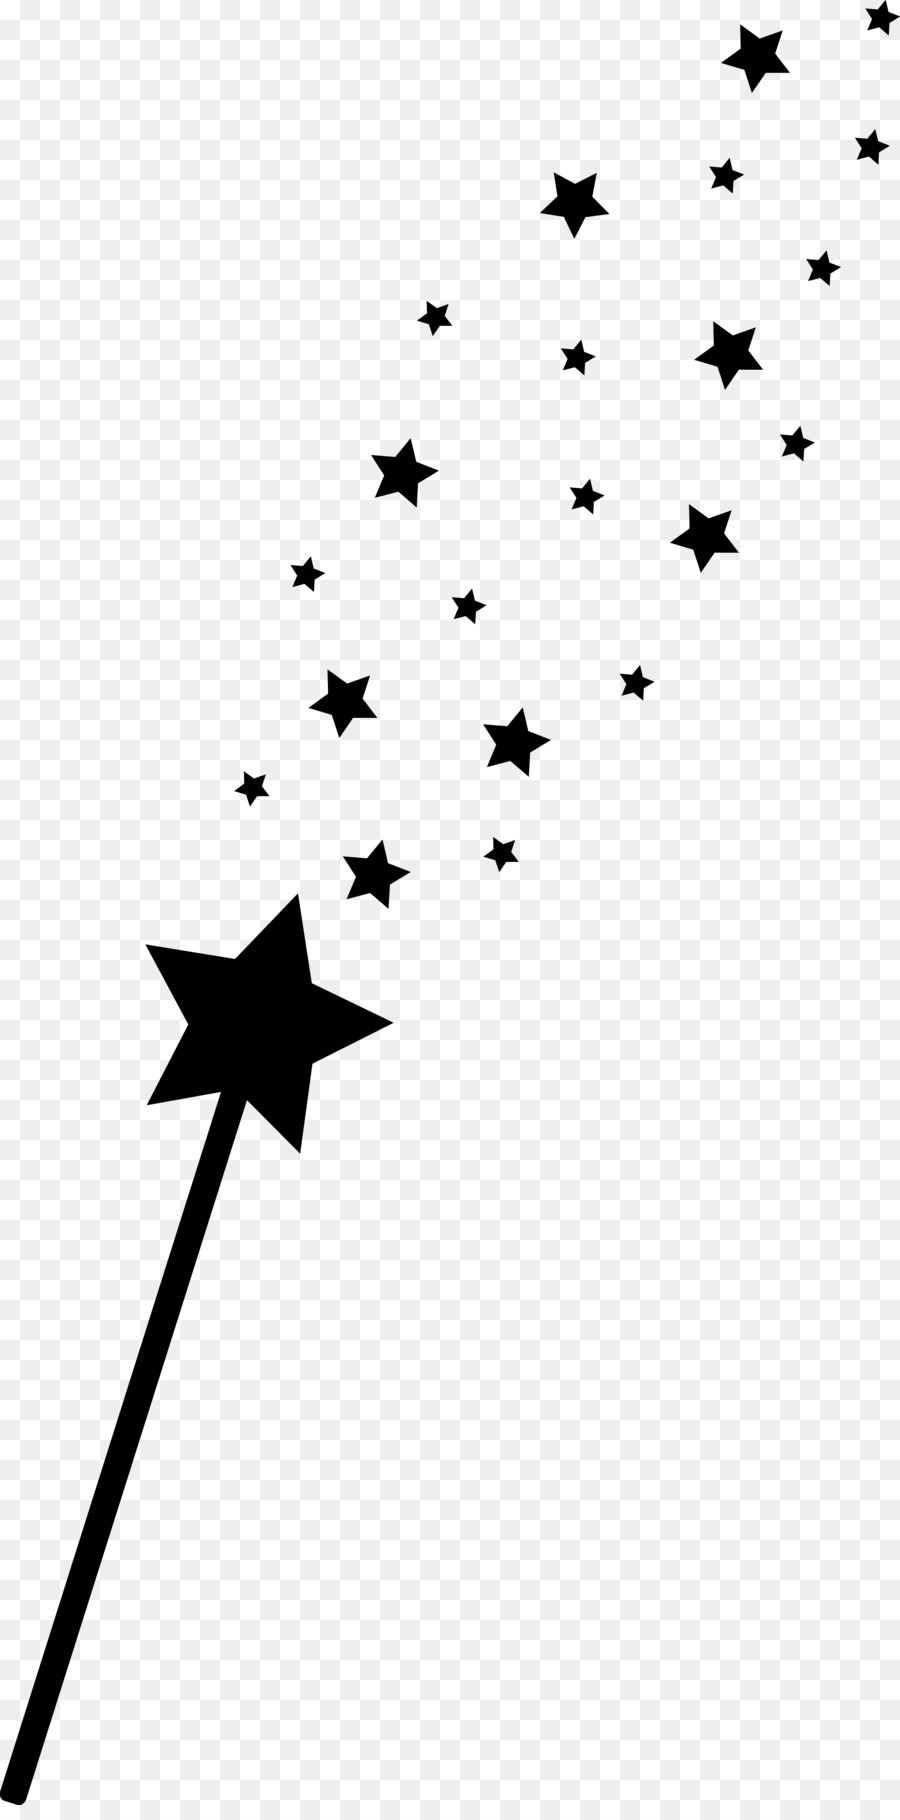 Wand Fairy Magic Clip art - Stars Silhouette - Wand PNG Black And White